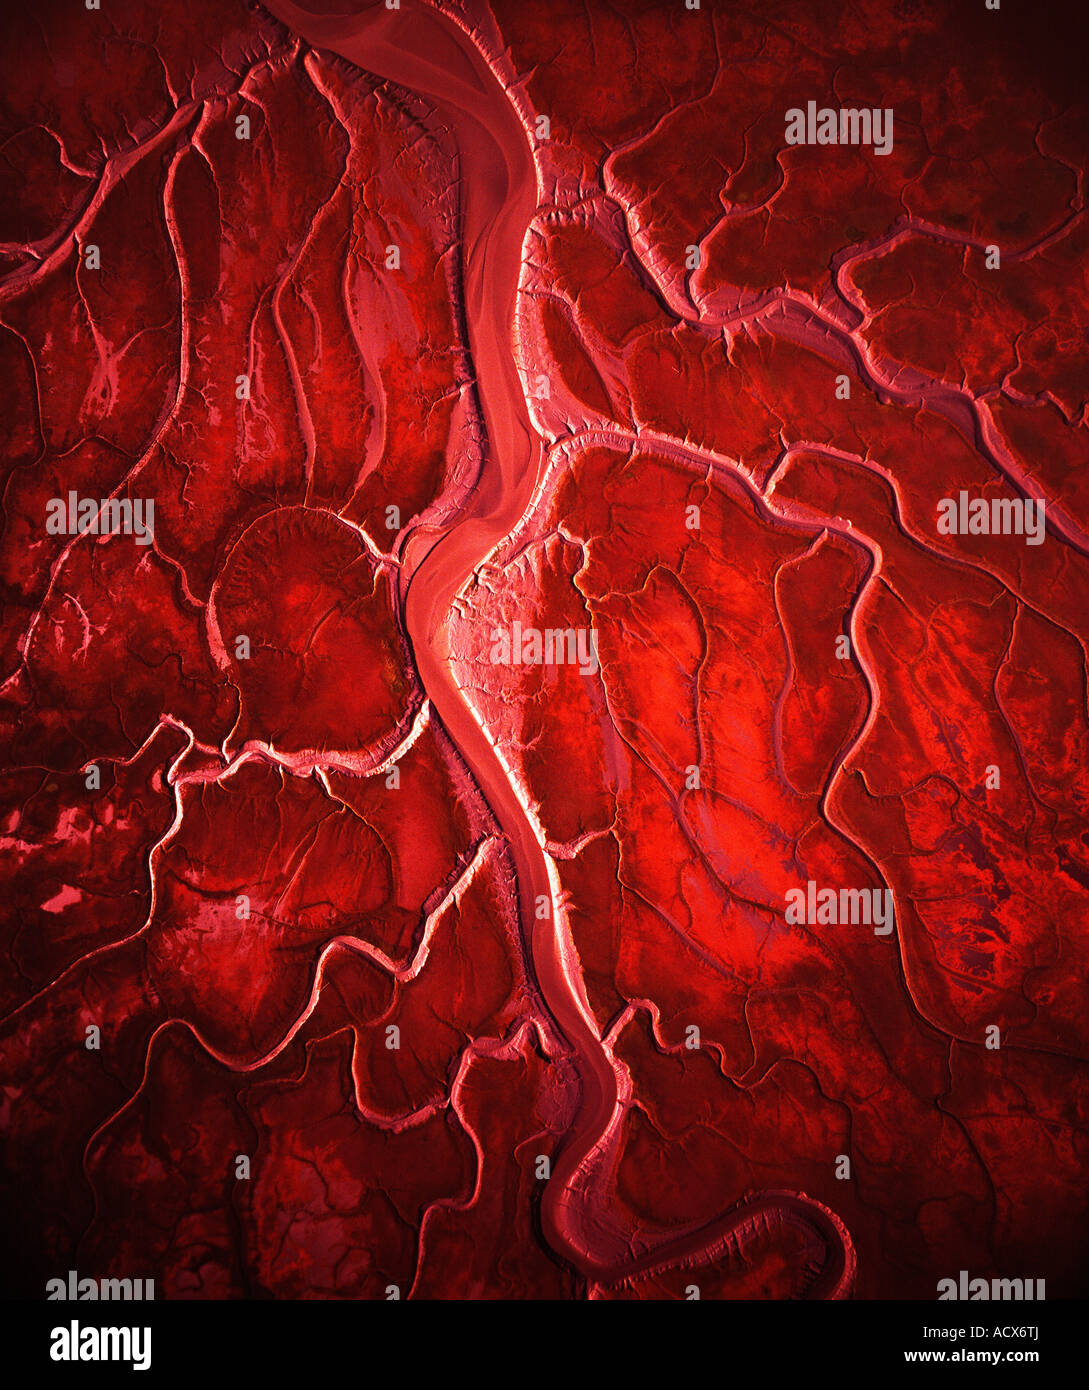 Like the arteries of the heart, the rivulets of this mudflat in Chickaloon Bay spread out from where the river empties. - Stock Image